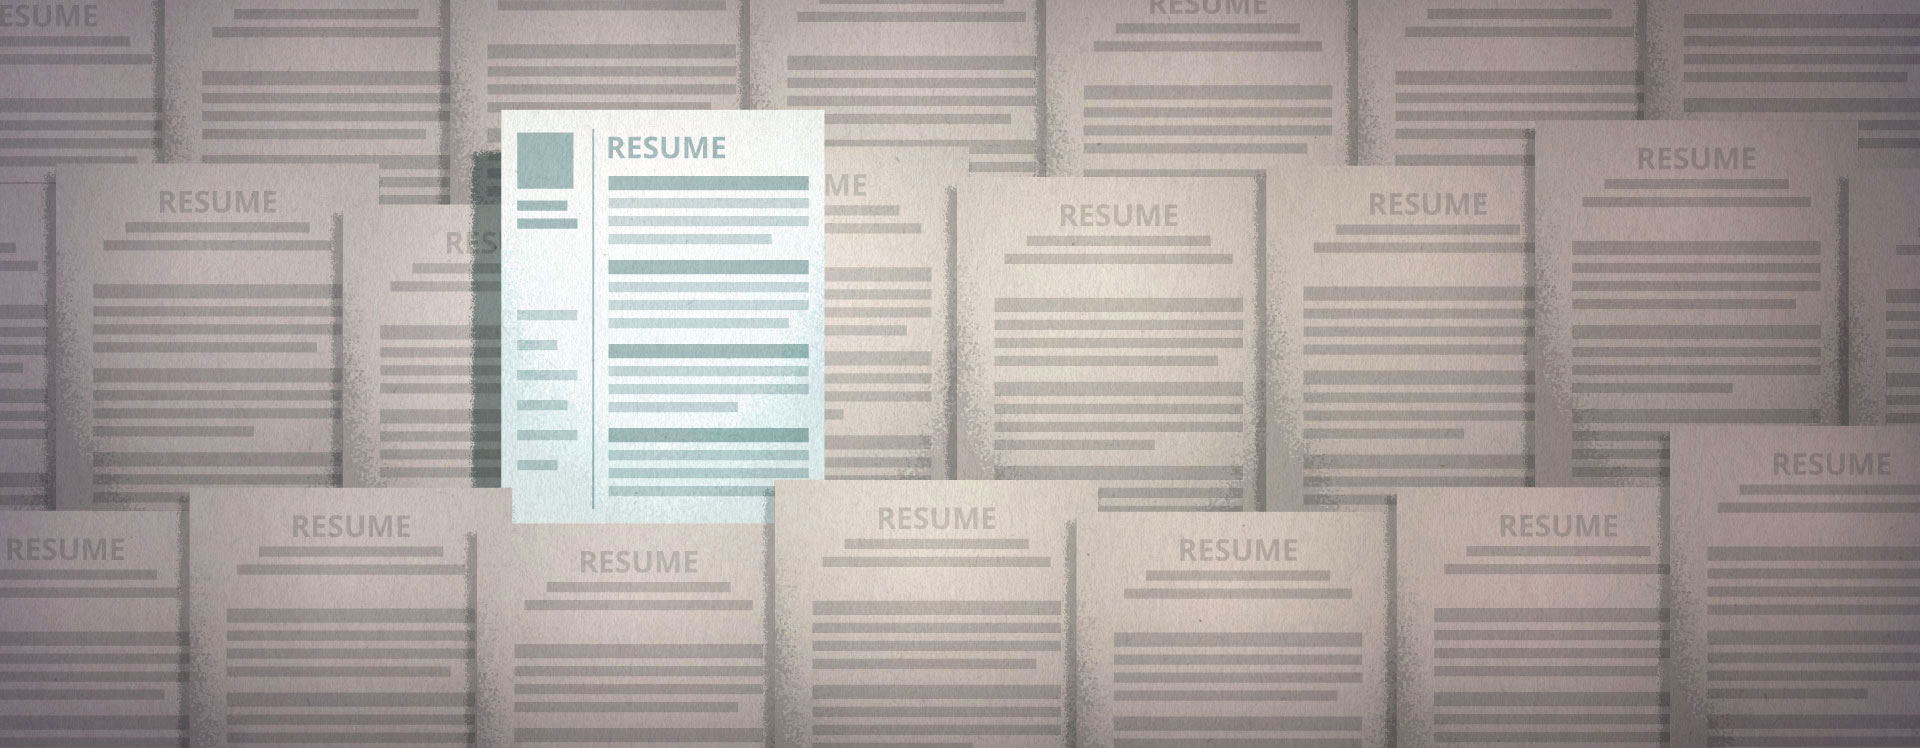 How Do You Make Your Resume Stand Out | How To Make Your Data Science Resume Stand Out